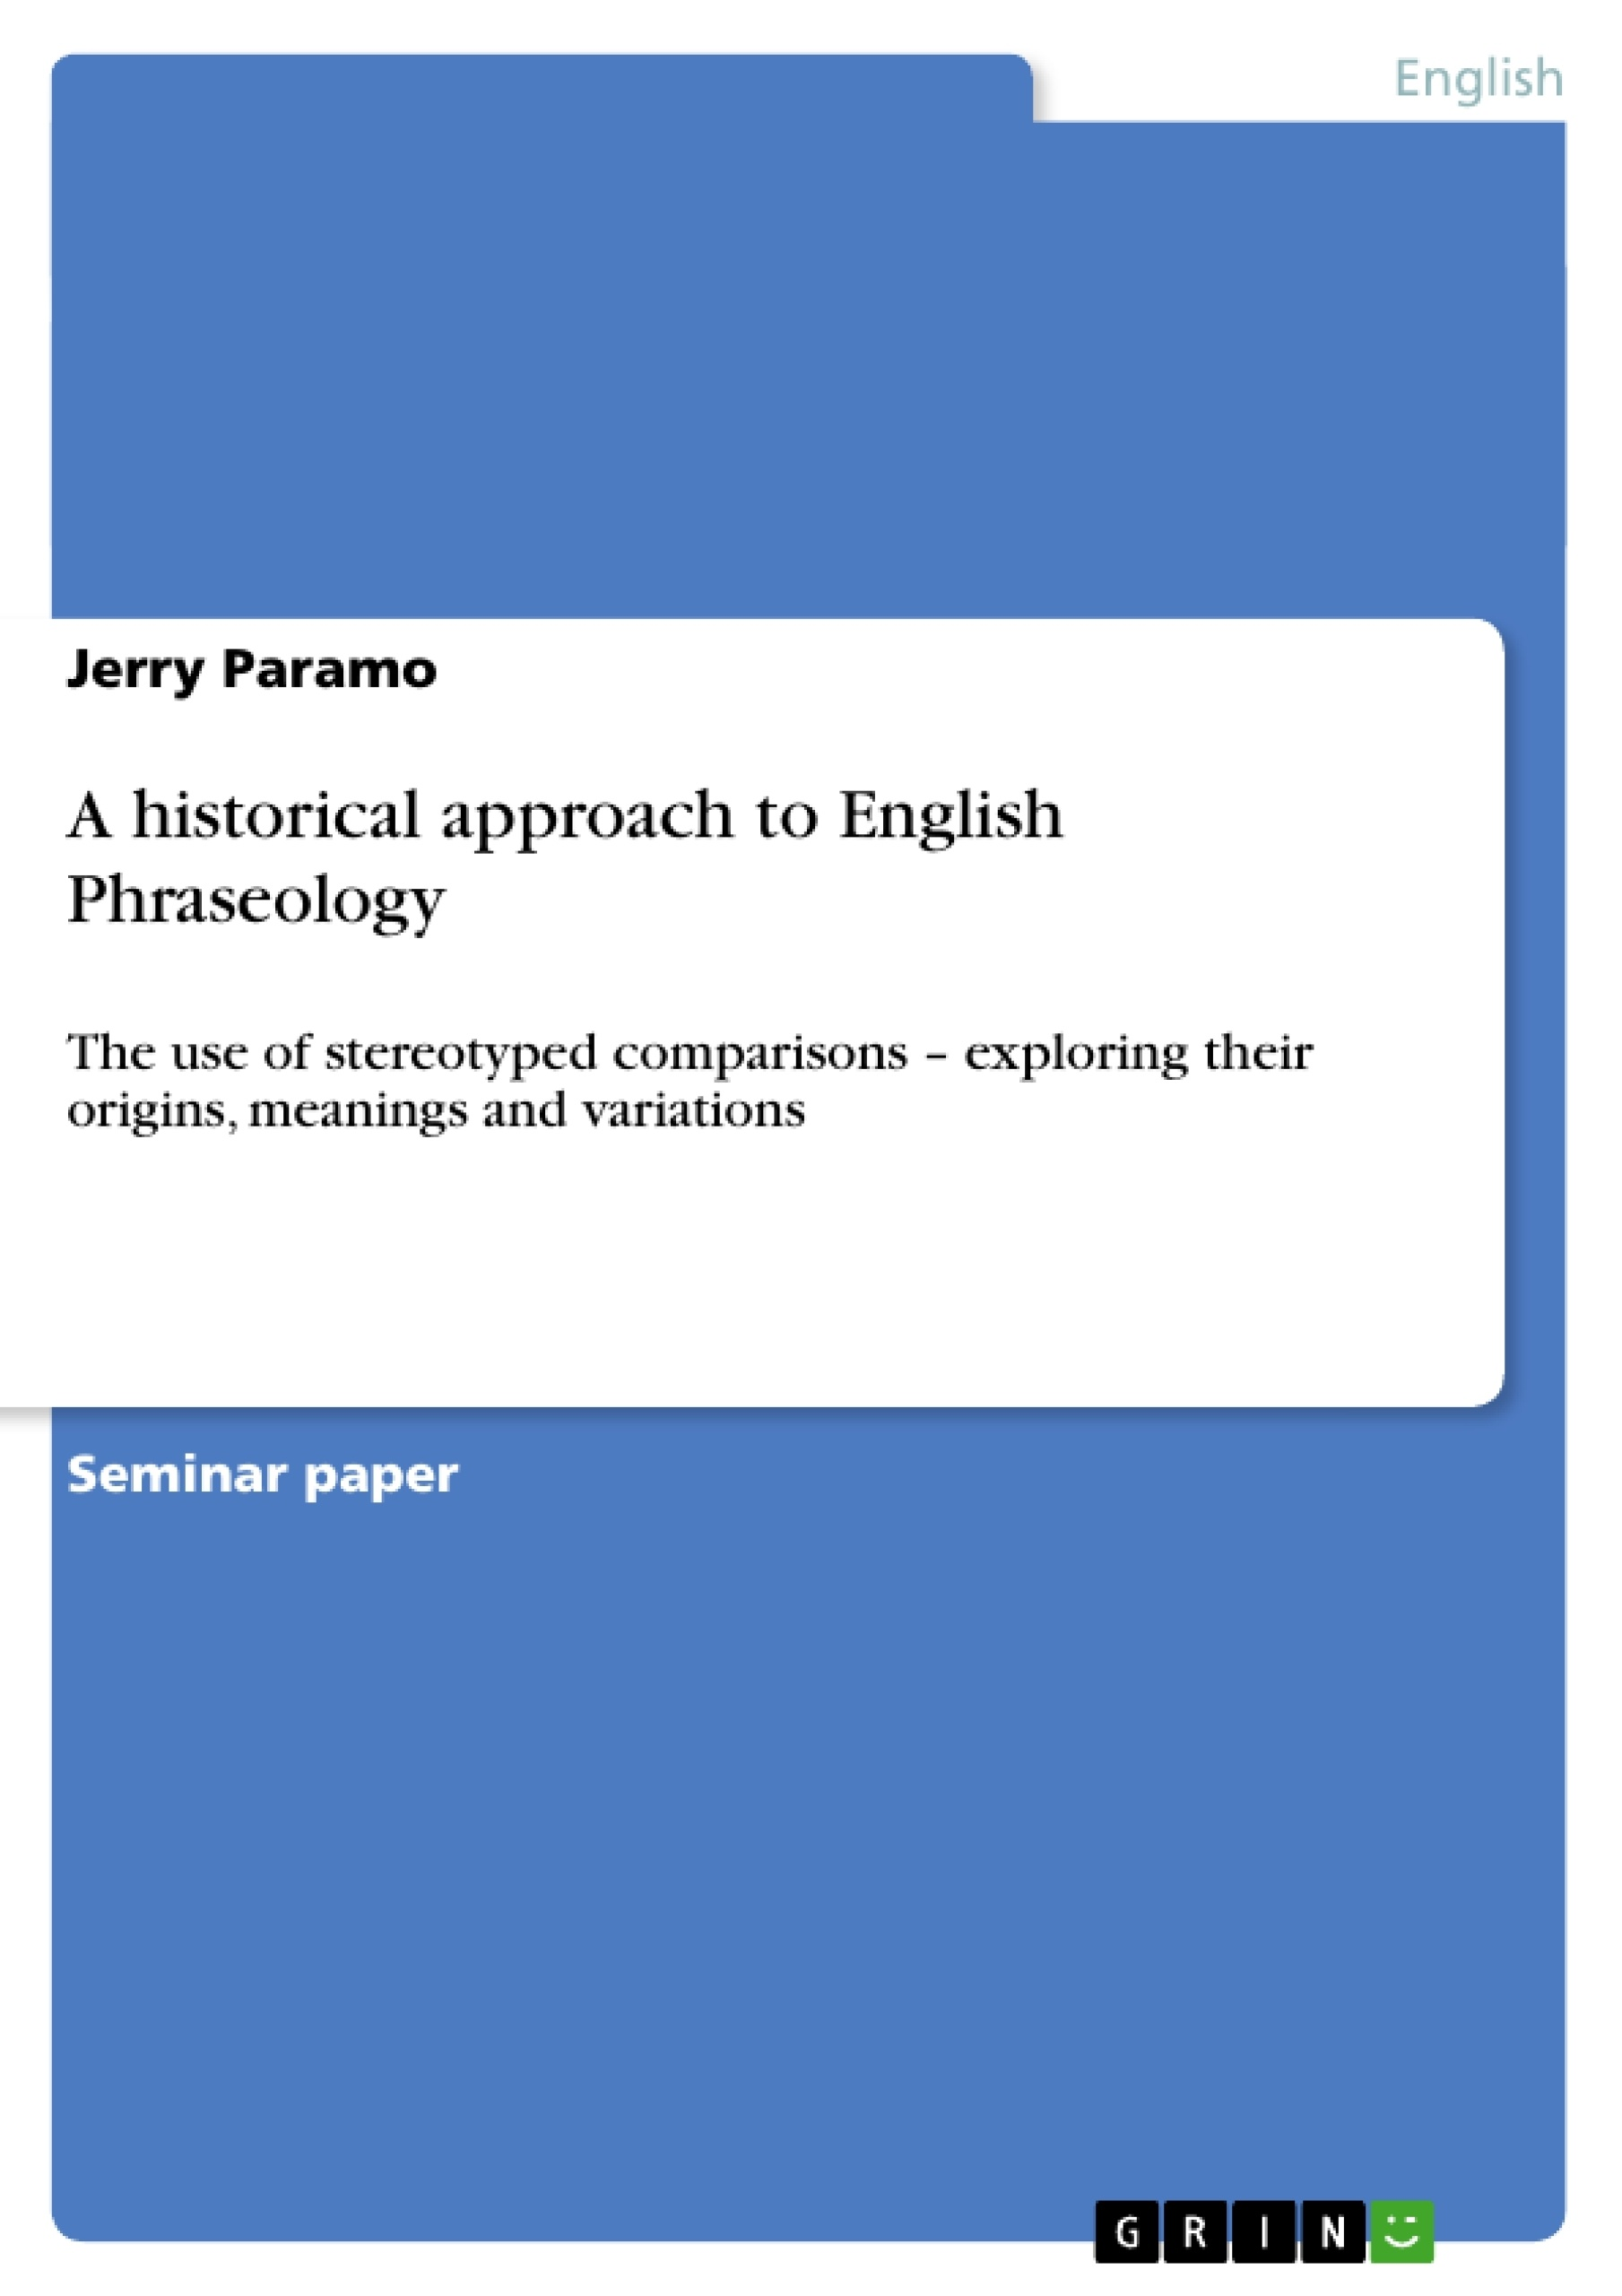 Title: A historical approach to English Phraseology